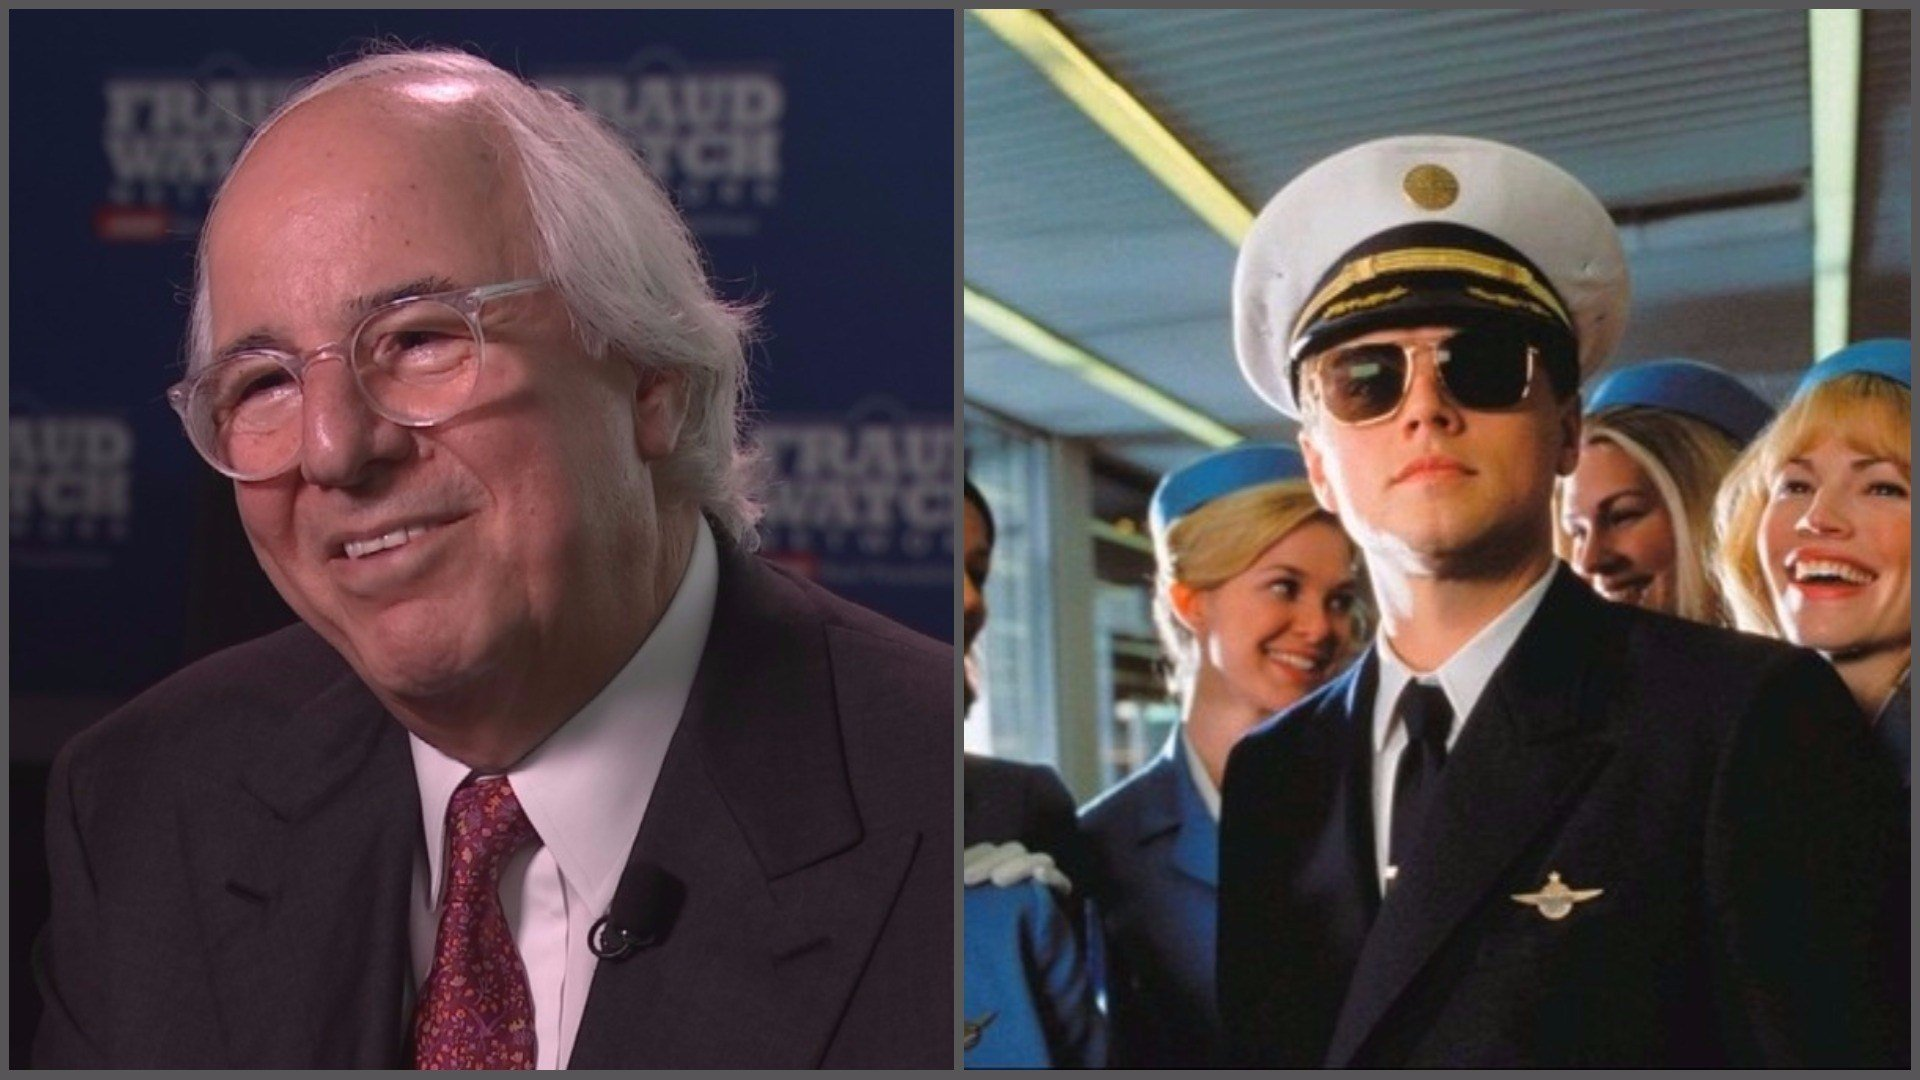 Frank Abagnale was portrayed by Leonardo DiCaprio in the movie 'Catch Me if You Can.' (Source: 3TV/CBS 5 and Dreamworks LLC)